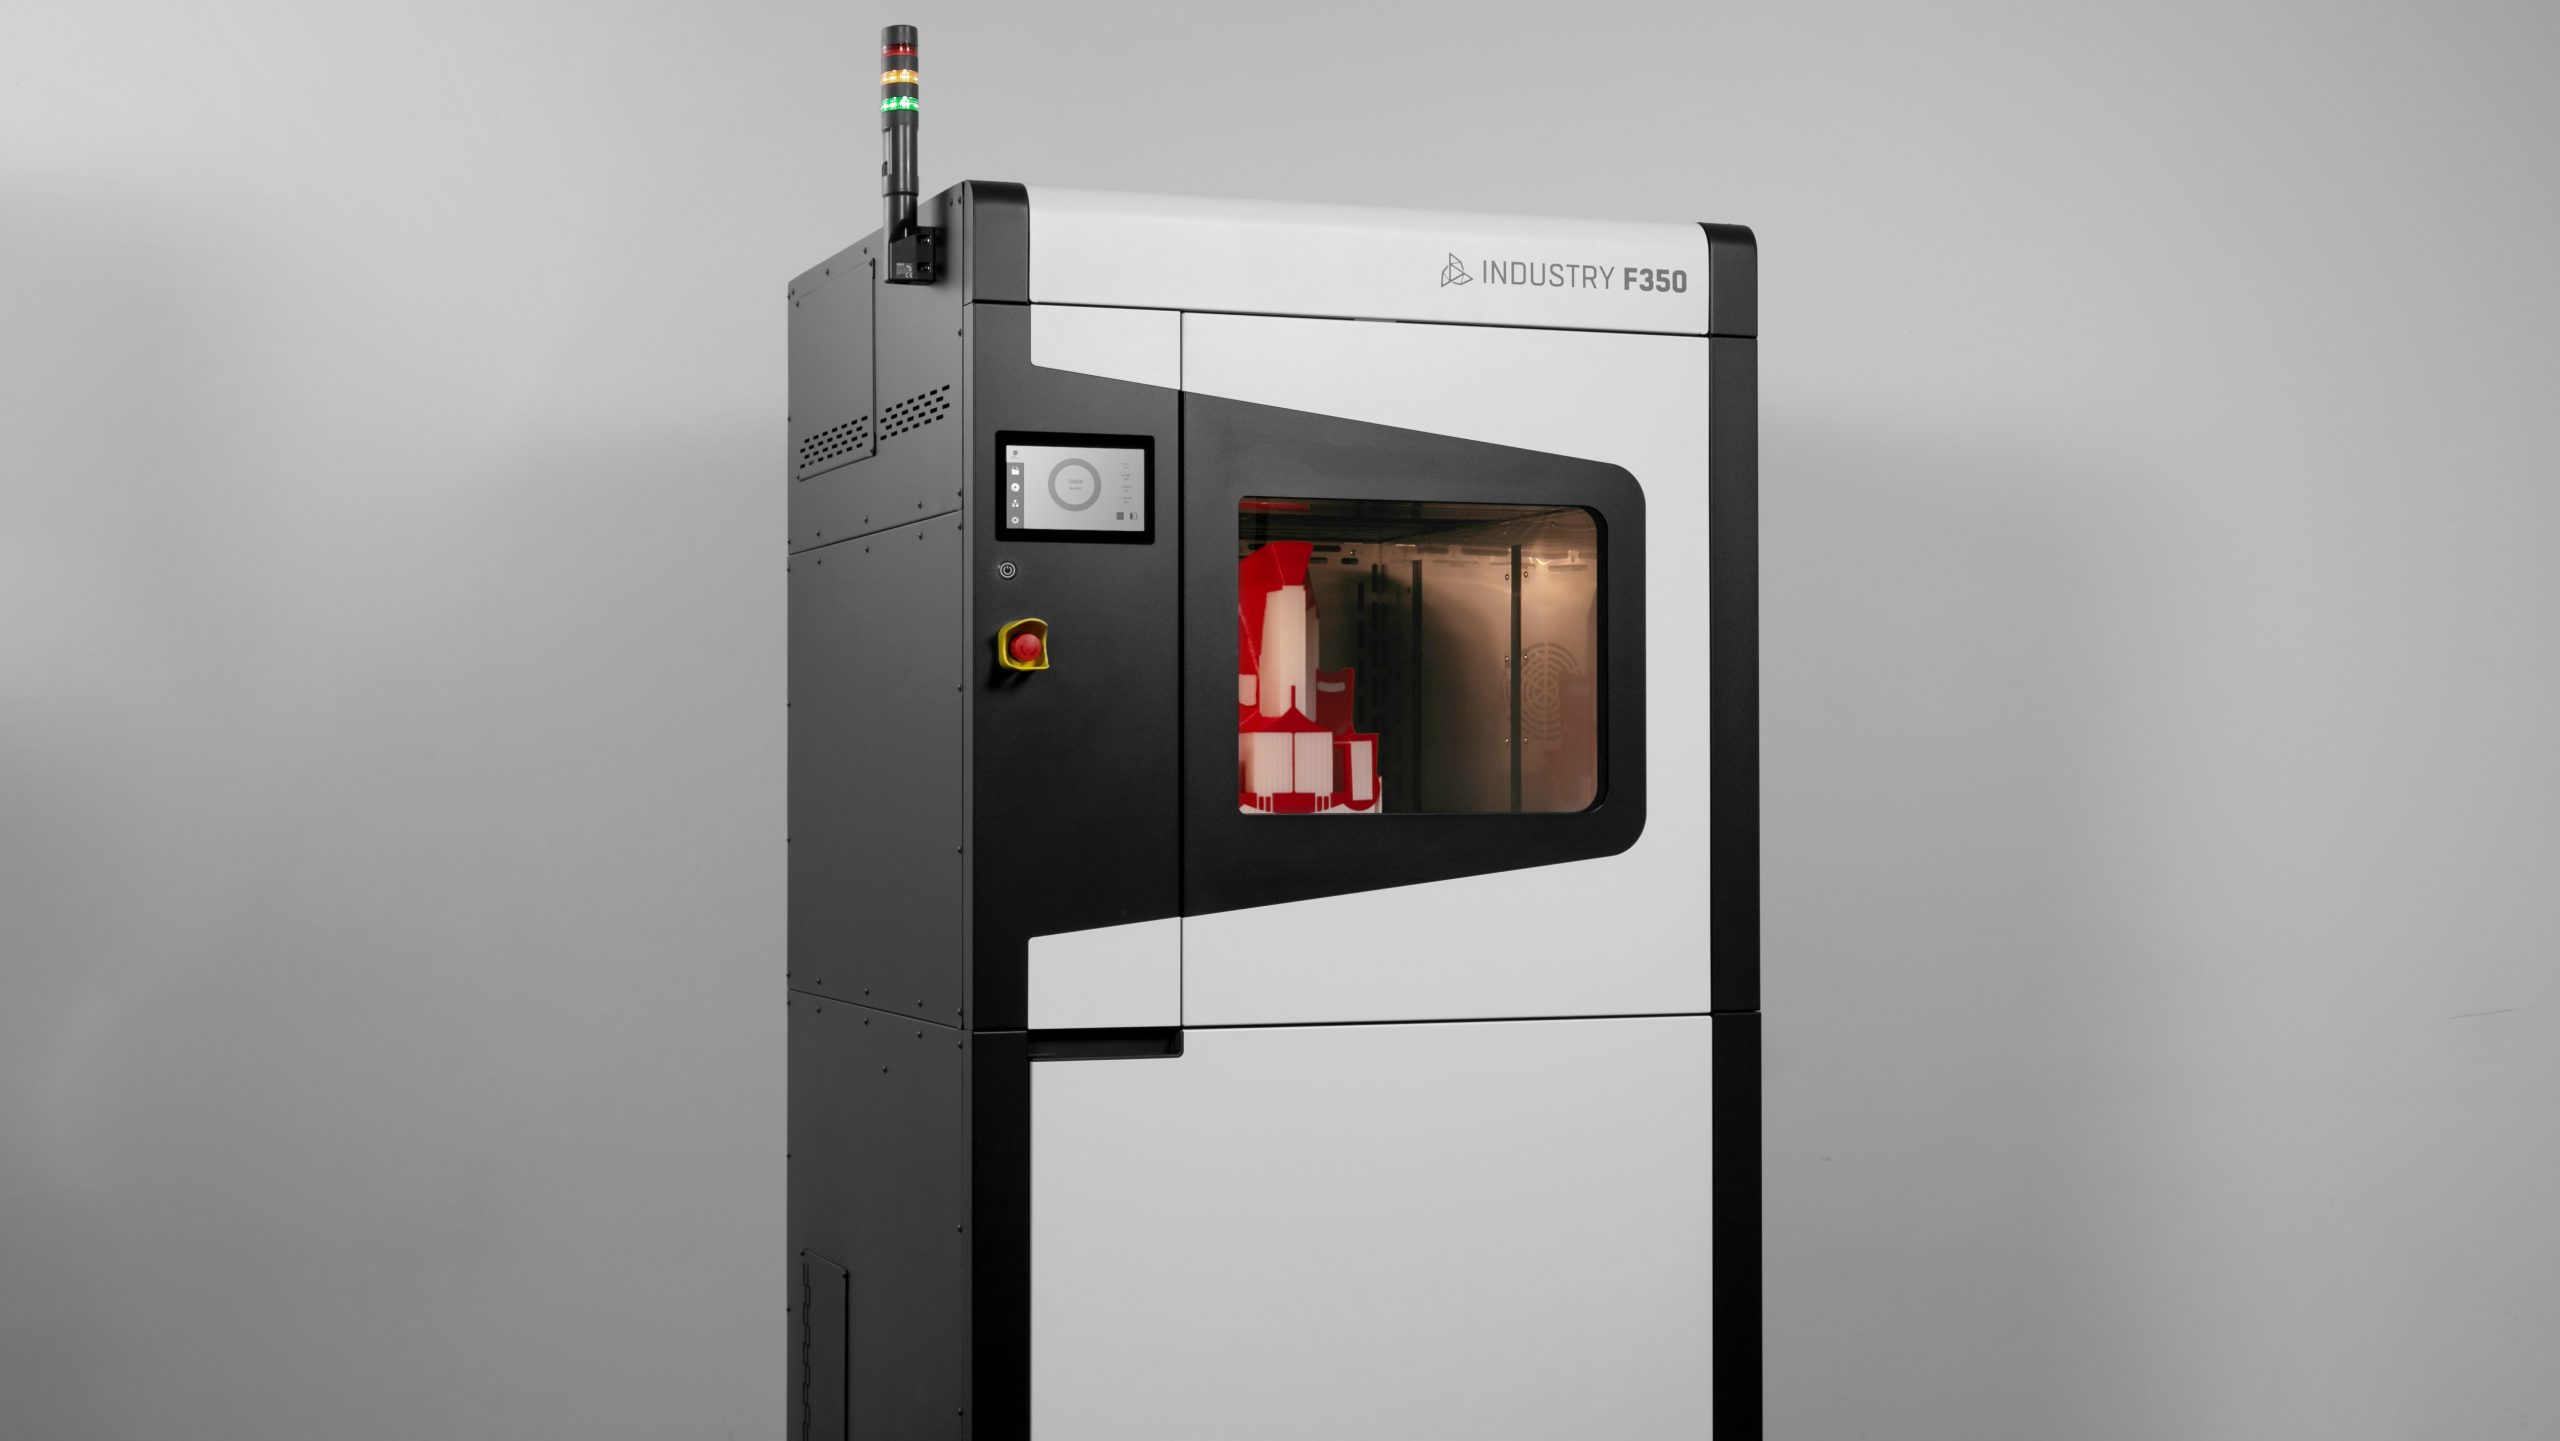 3DGence launches the INDUSTRY F350 high-temperature 3D printer - technical data and prices